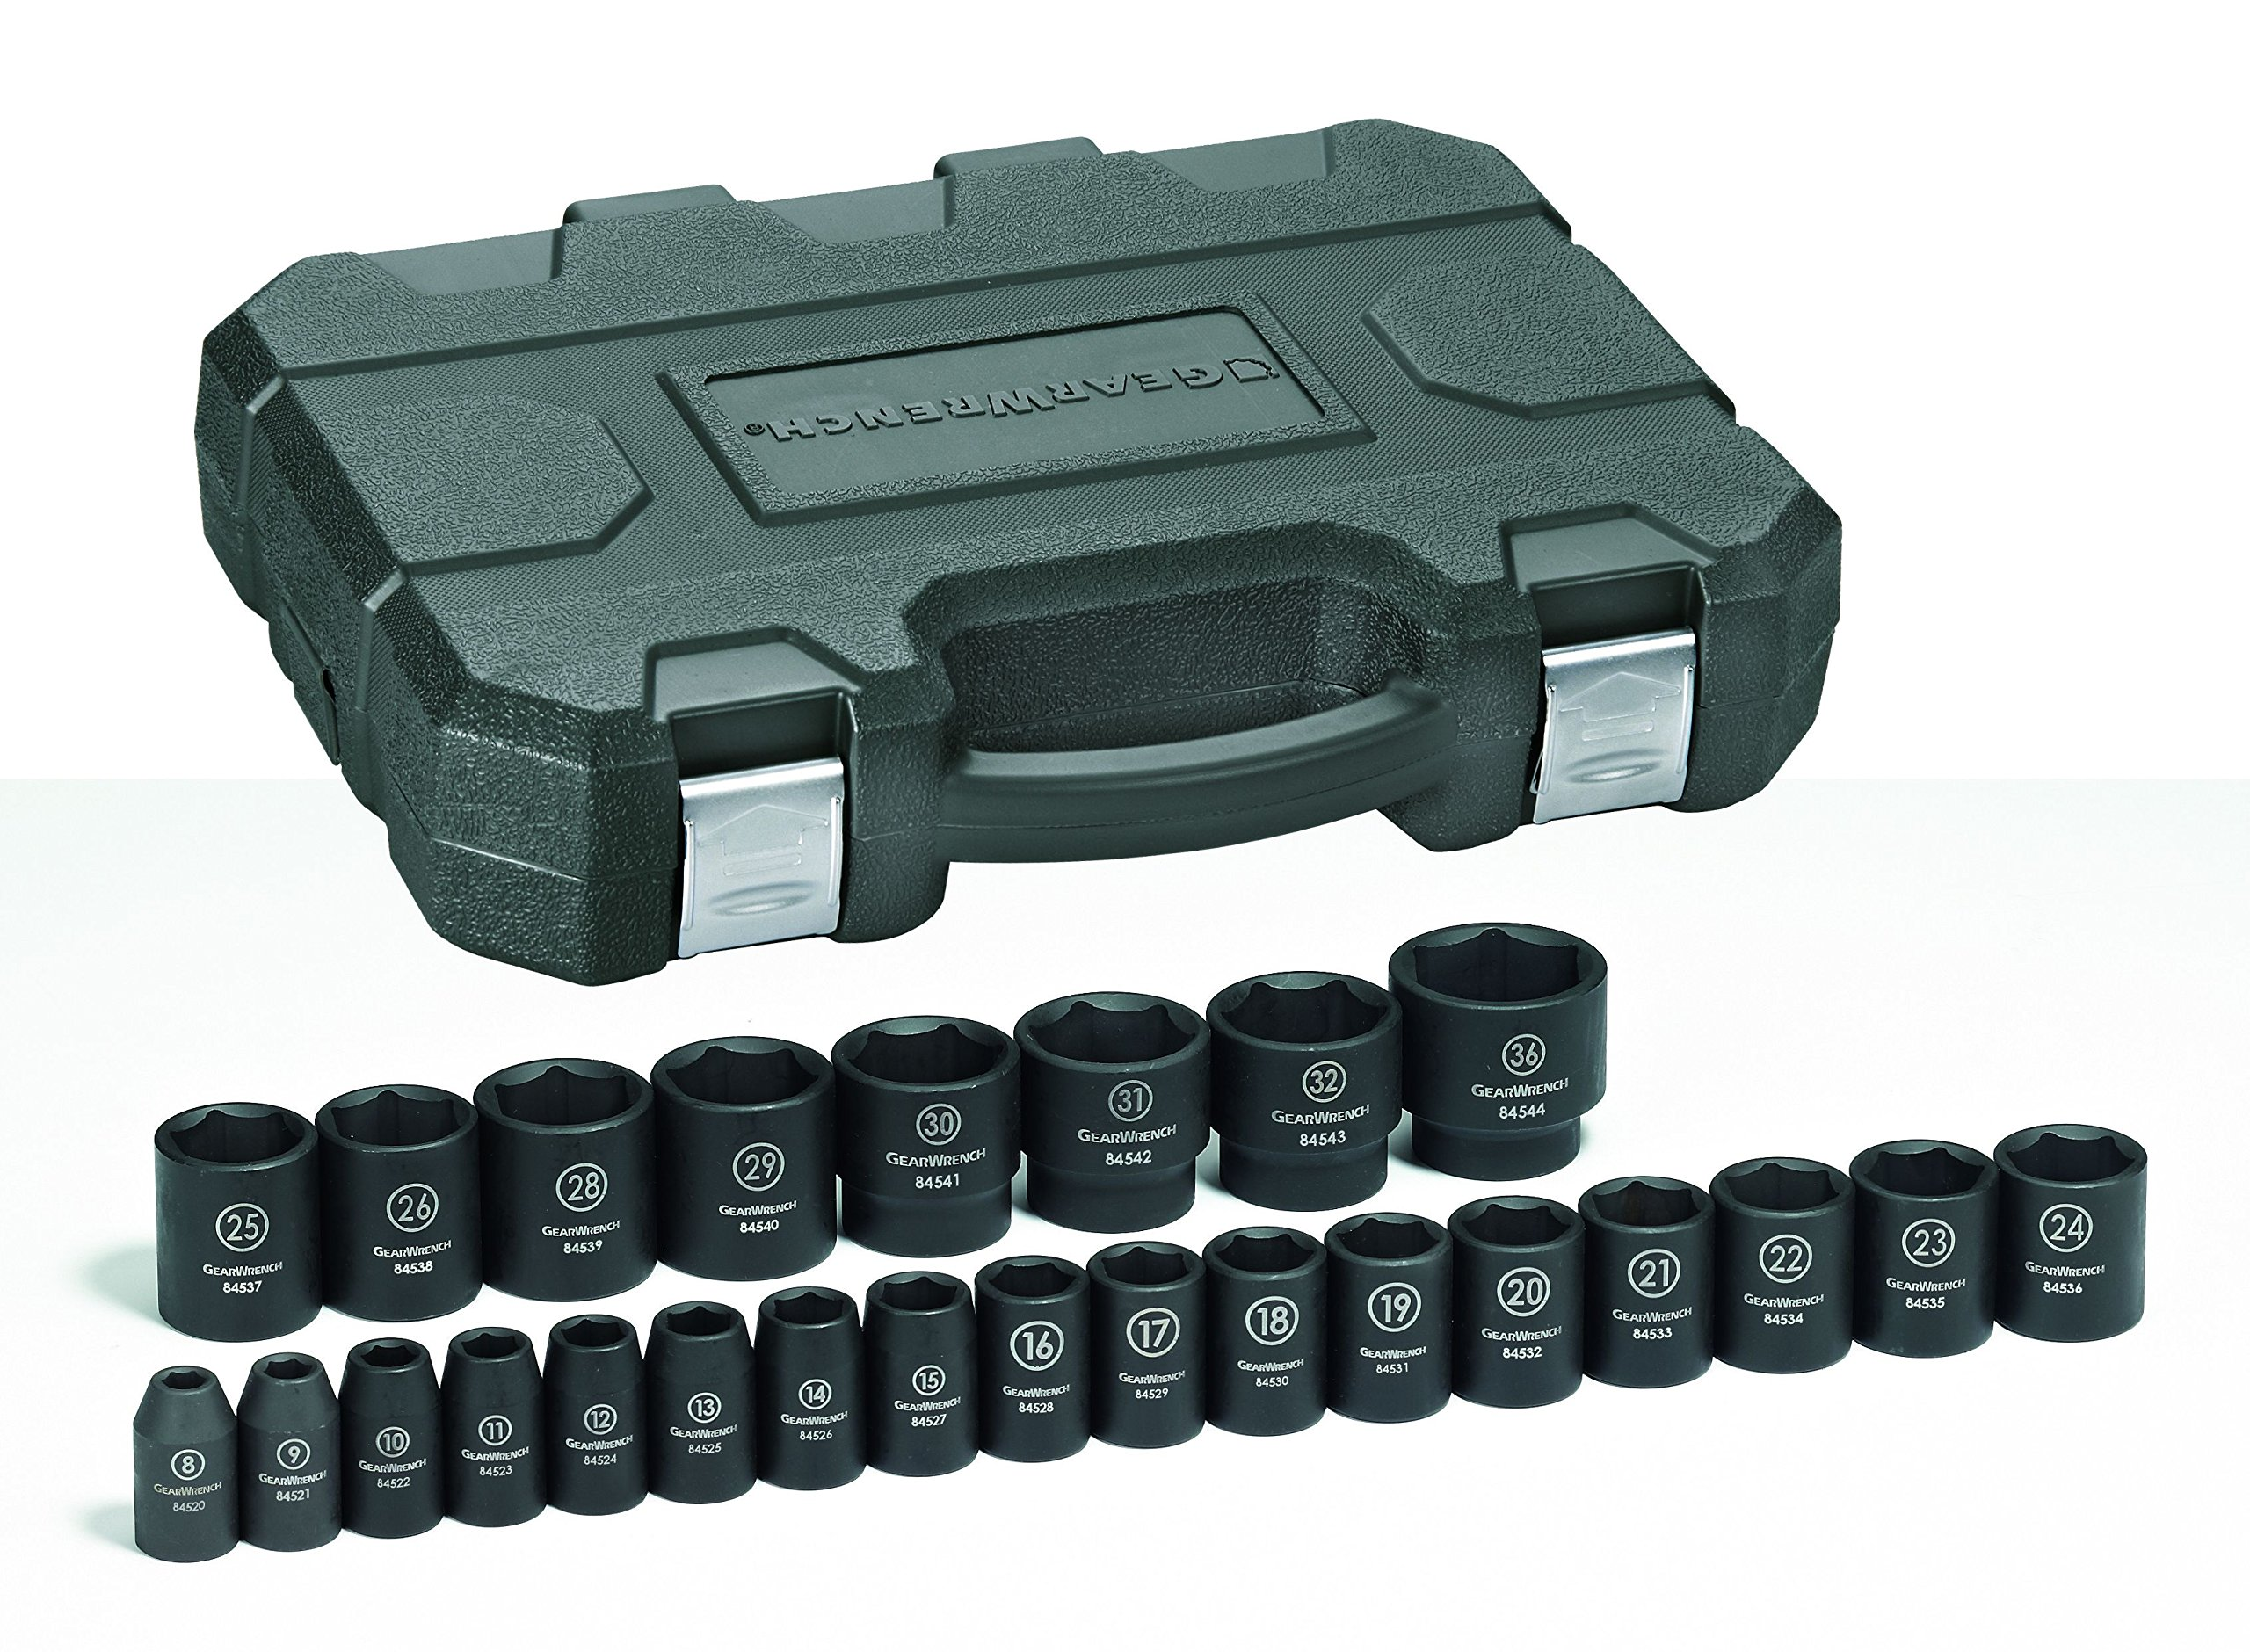 GEARWRENCH 25 Pc. 1/2'' Drive 6 Point Standard Impact Metric Socket Set - 84933N by GearWrench